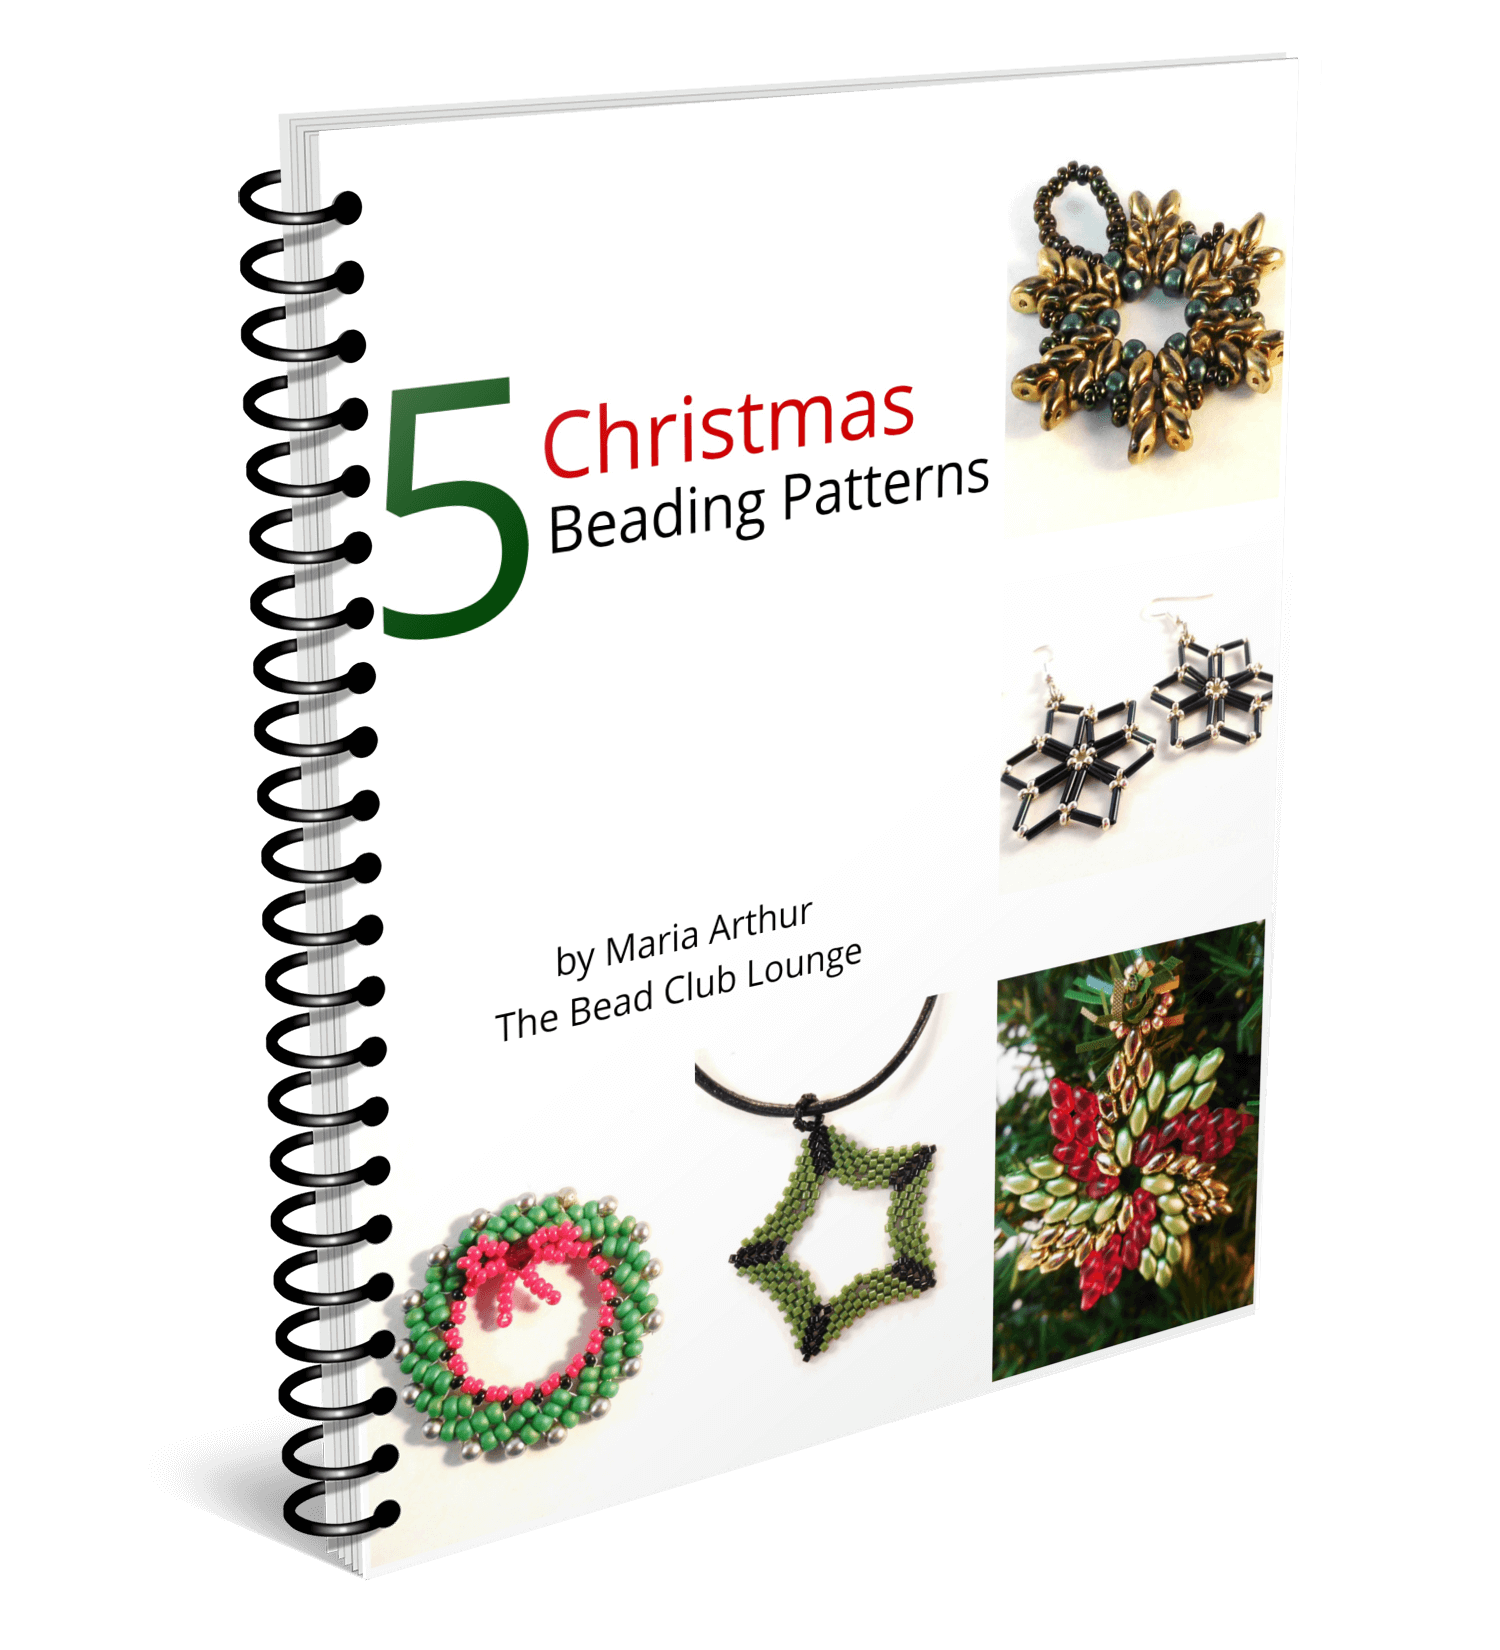 Download this collection of Christmas beading patterns.